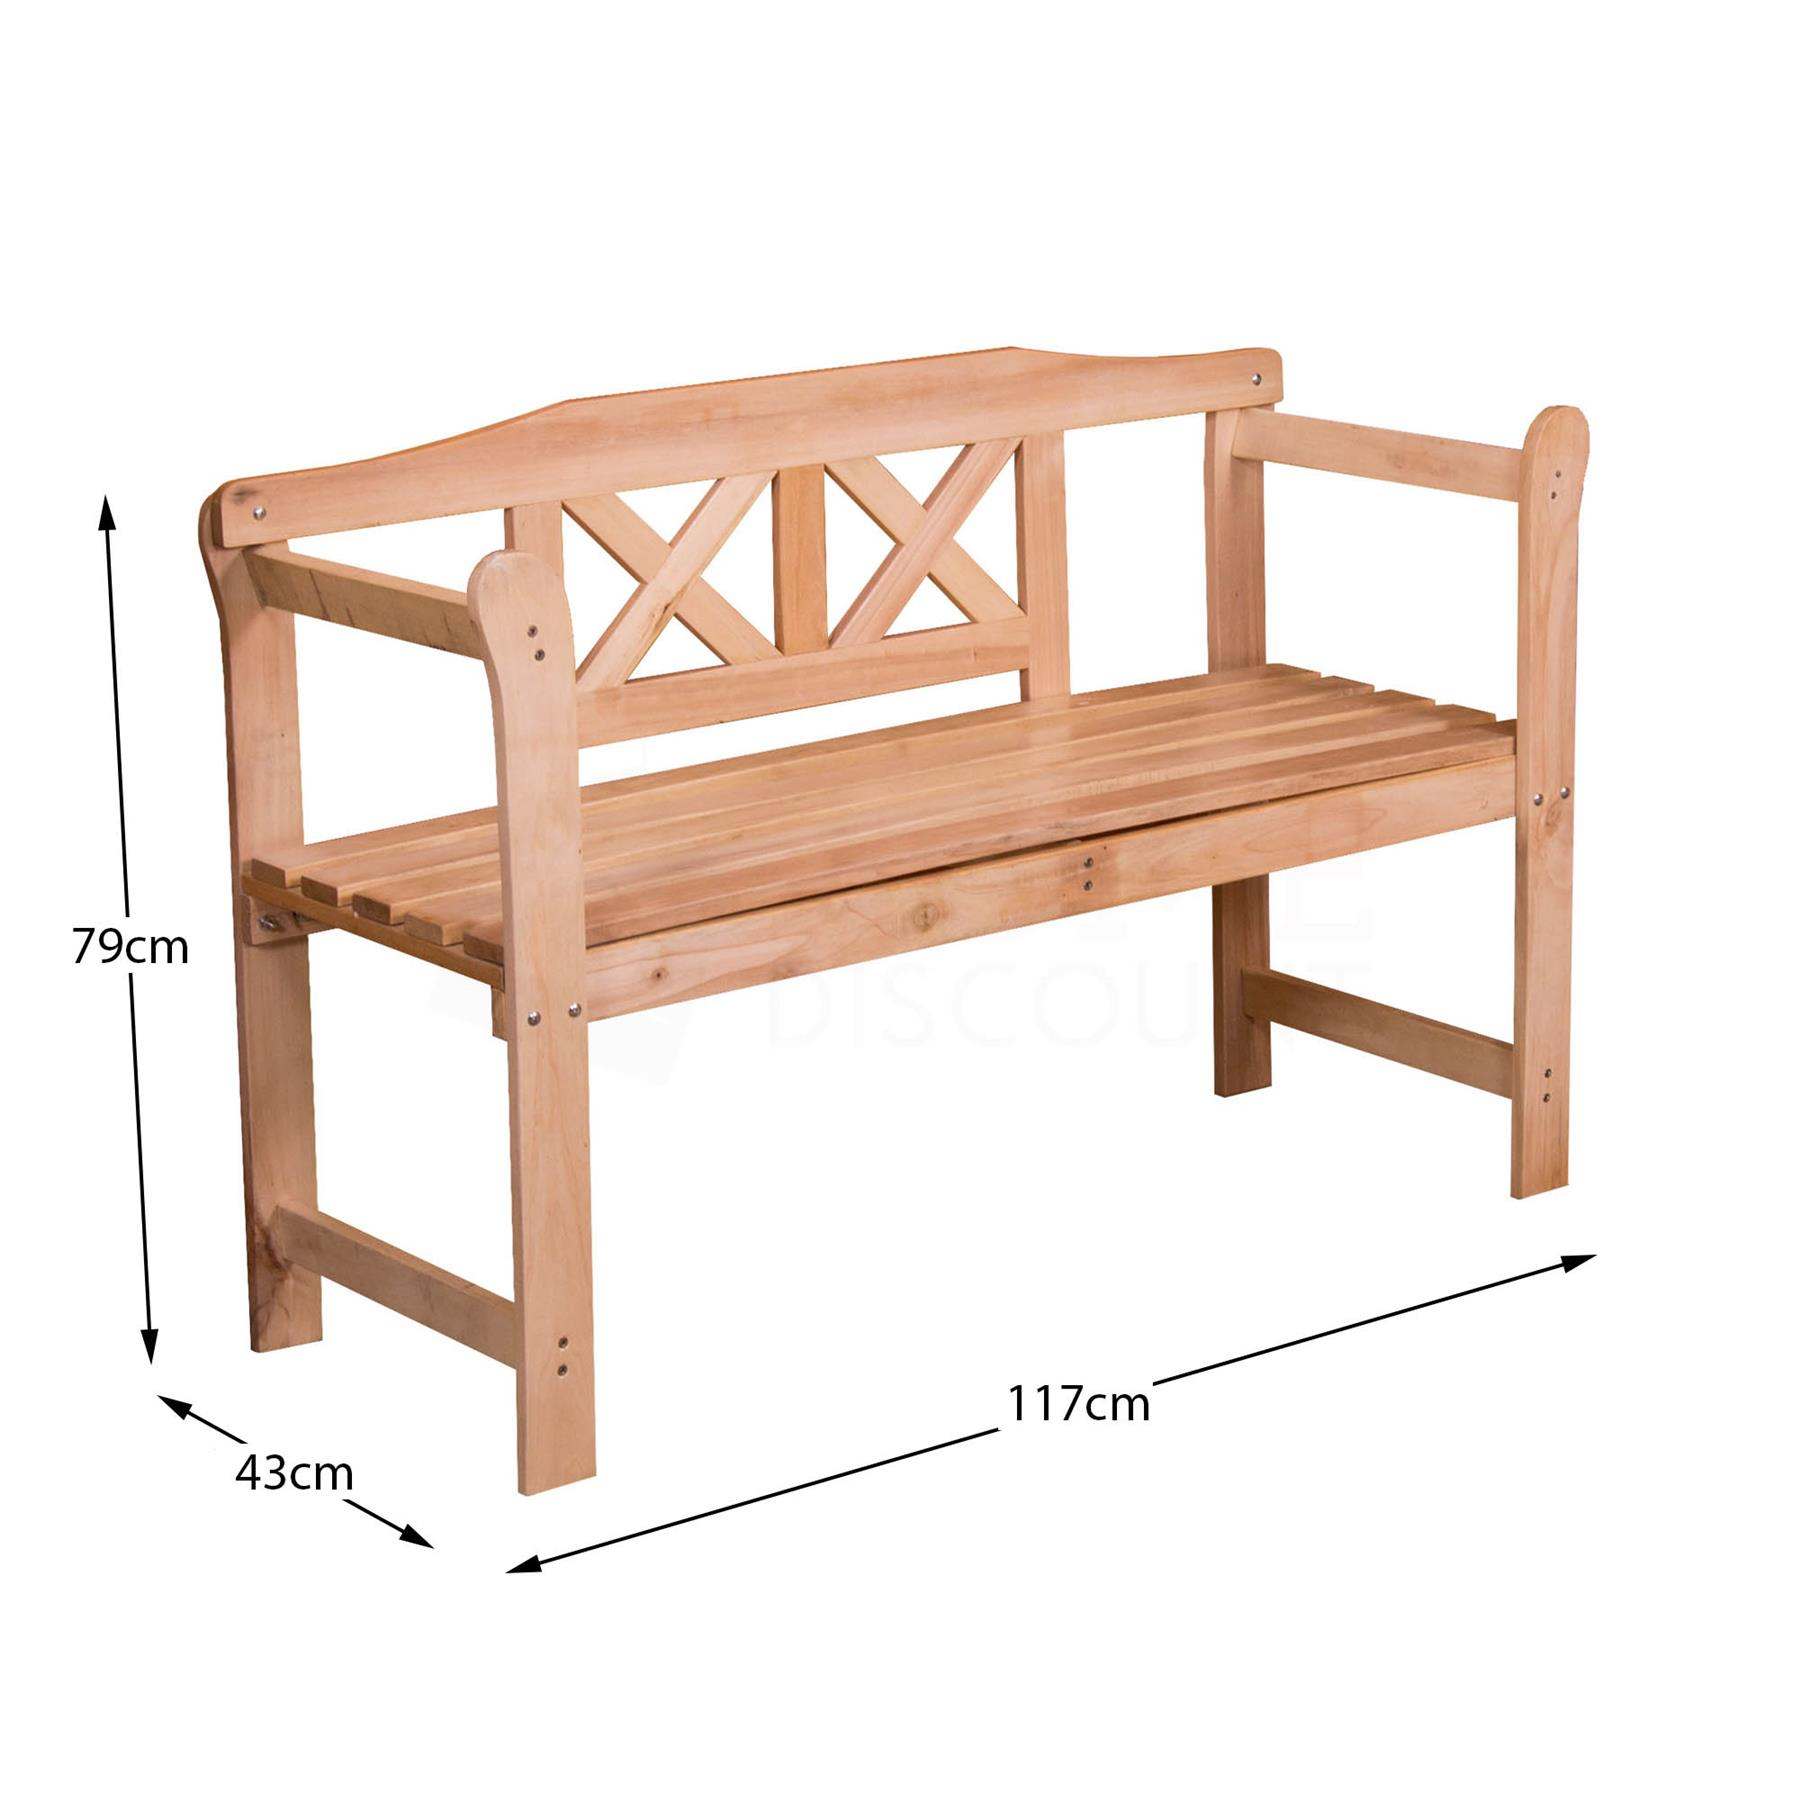 thumbnail 45 - Garden-Bench-Outdoor-Wooden-Metal-Picnic-Seat-Home-Patio-Furniture-Rustic-Iron-3